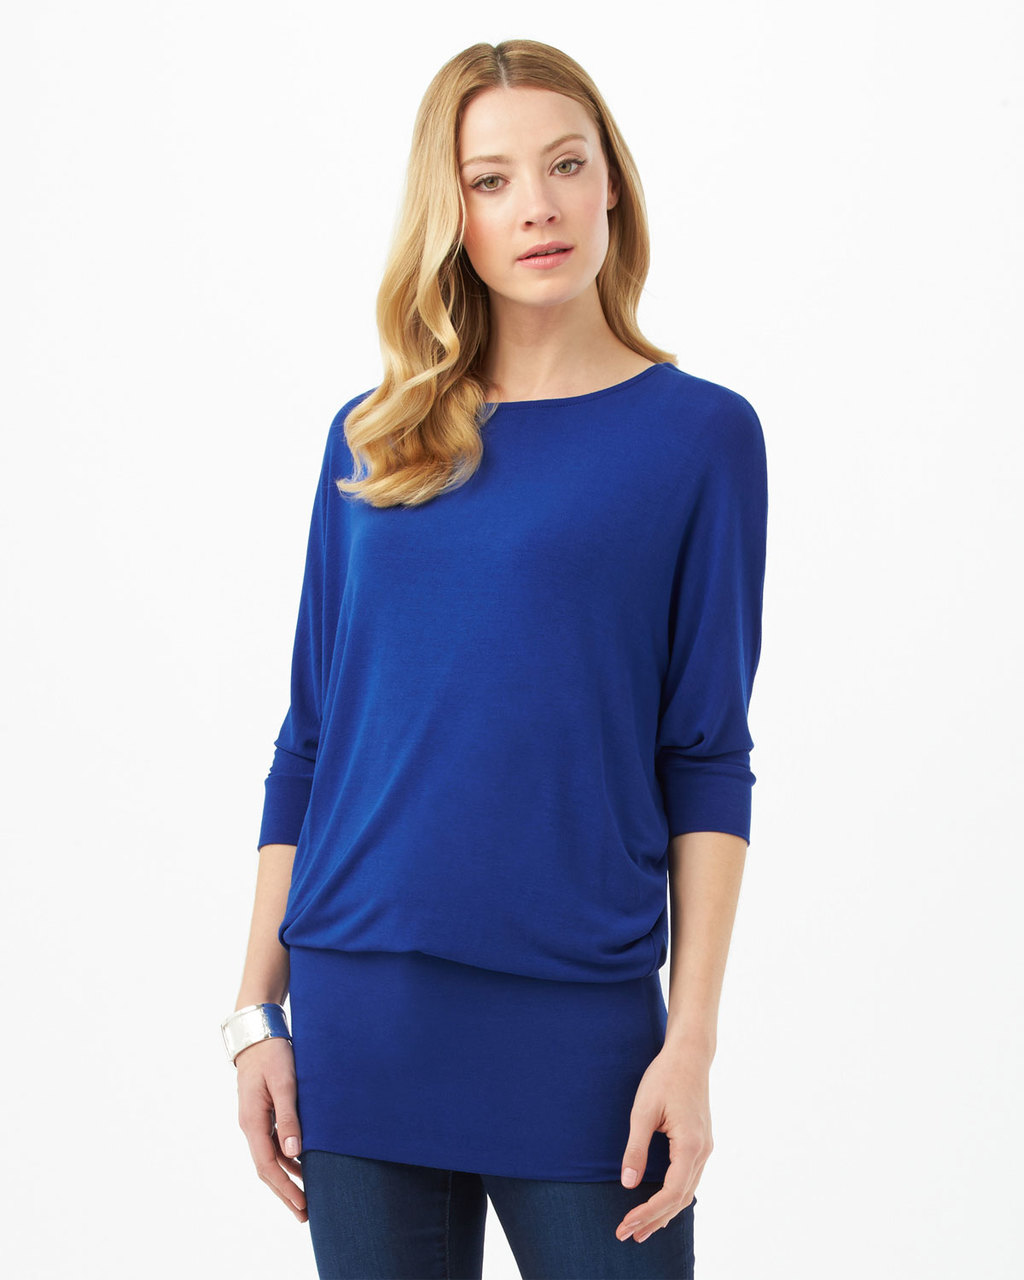 Beth Dress - style: tunic; length: below the knee; pattern: plain; predominant colour: royal blue; occasions: casual; fit: body skimming; fibres: viscose/rayon - stretch; neckline: crew; sleeve length: 3/4 length; sleeve style: standard; pattern type: fabric; texture group: jersey - stretchy/drapey; season: s/s 2016